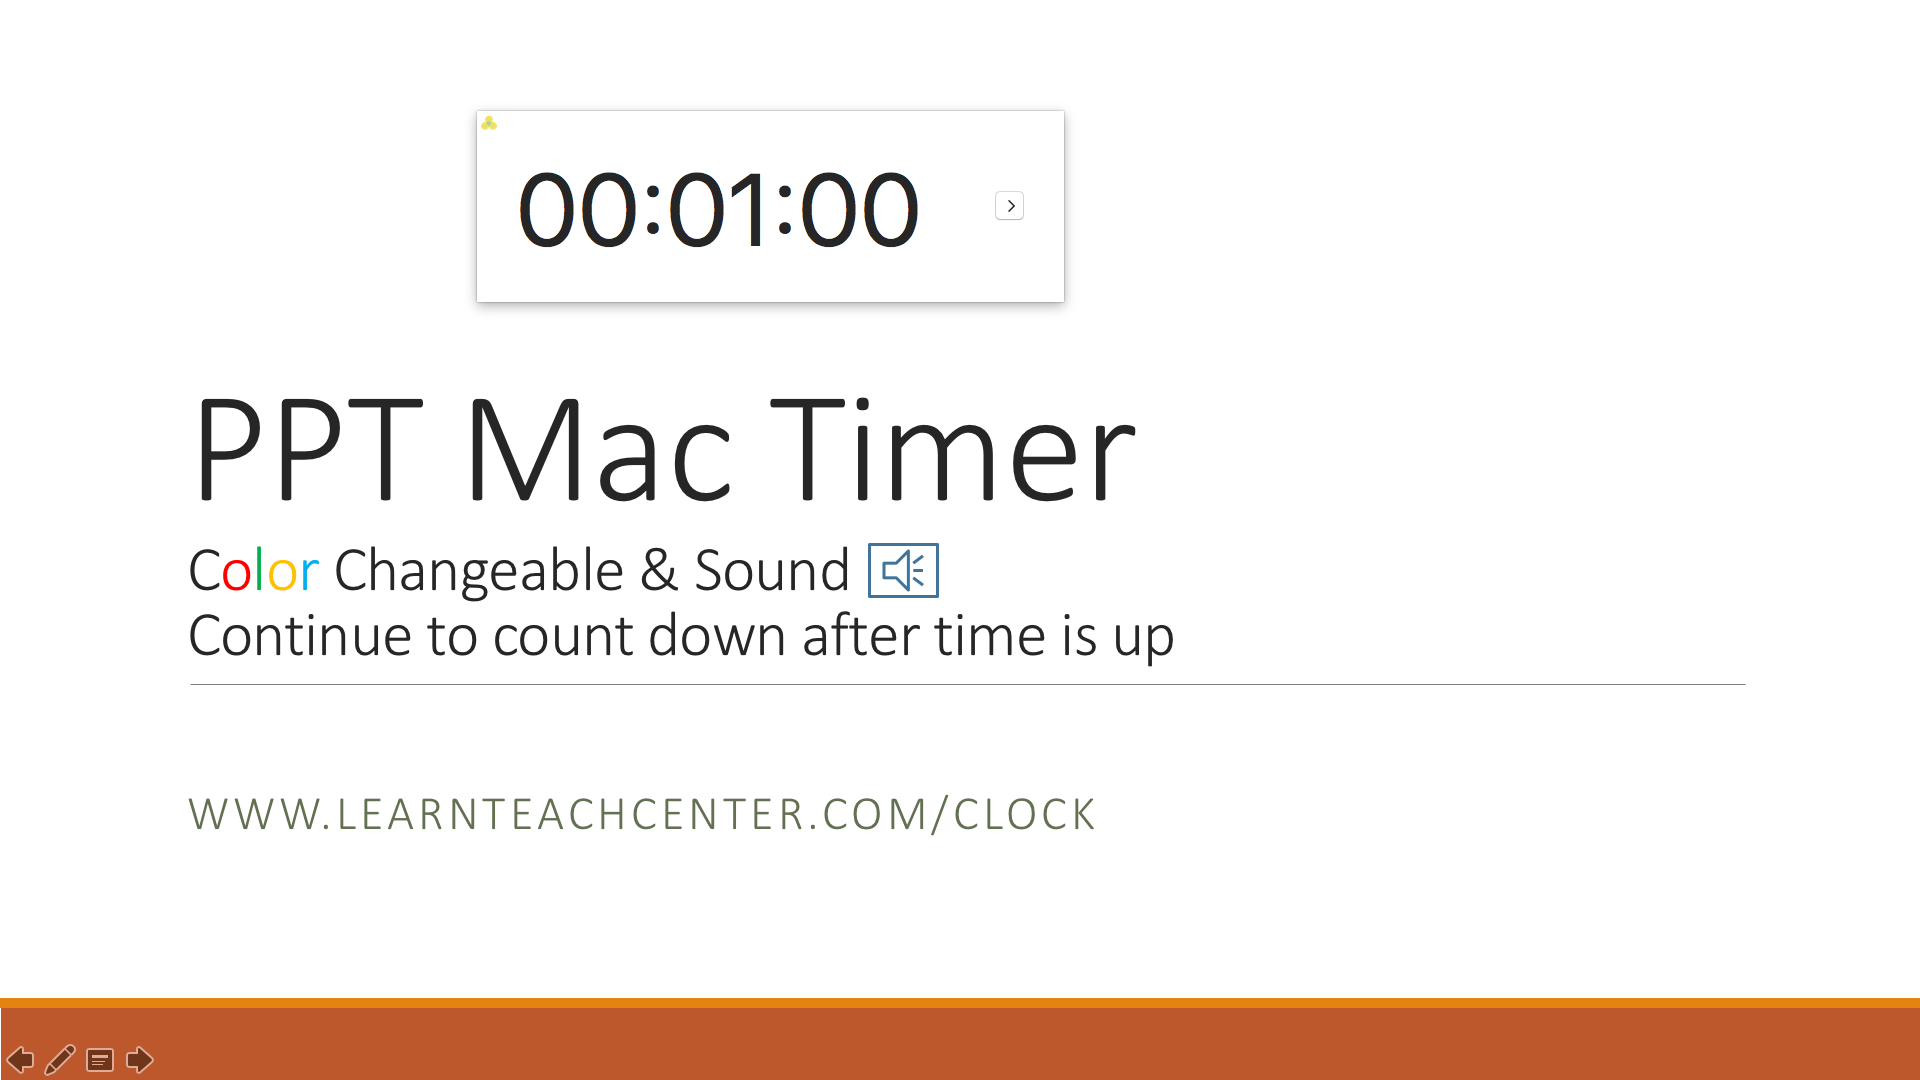 PPT Mac Timer Color Changeable, Sound, Countdown extra time